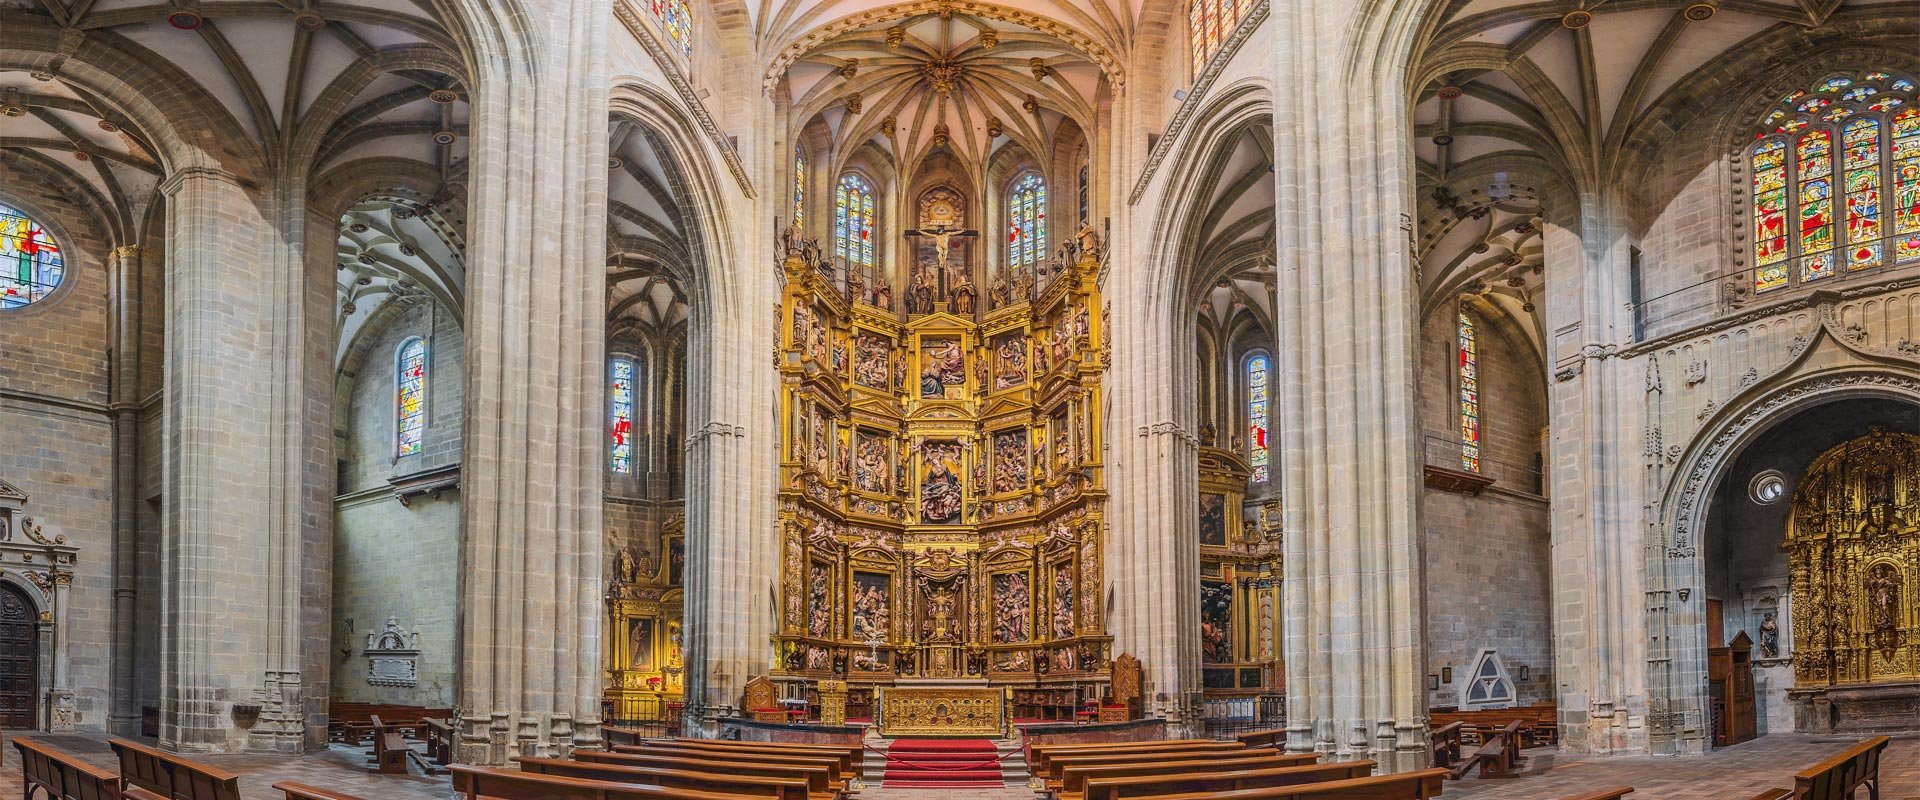 CATEDRAL DE ASTORGA INTERIOR